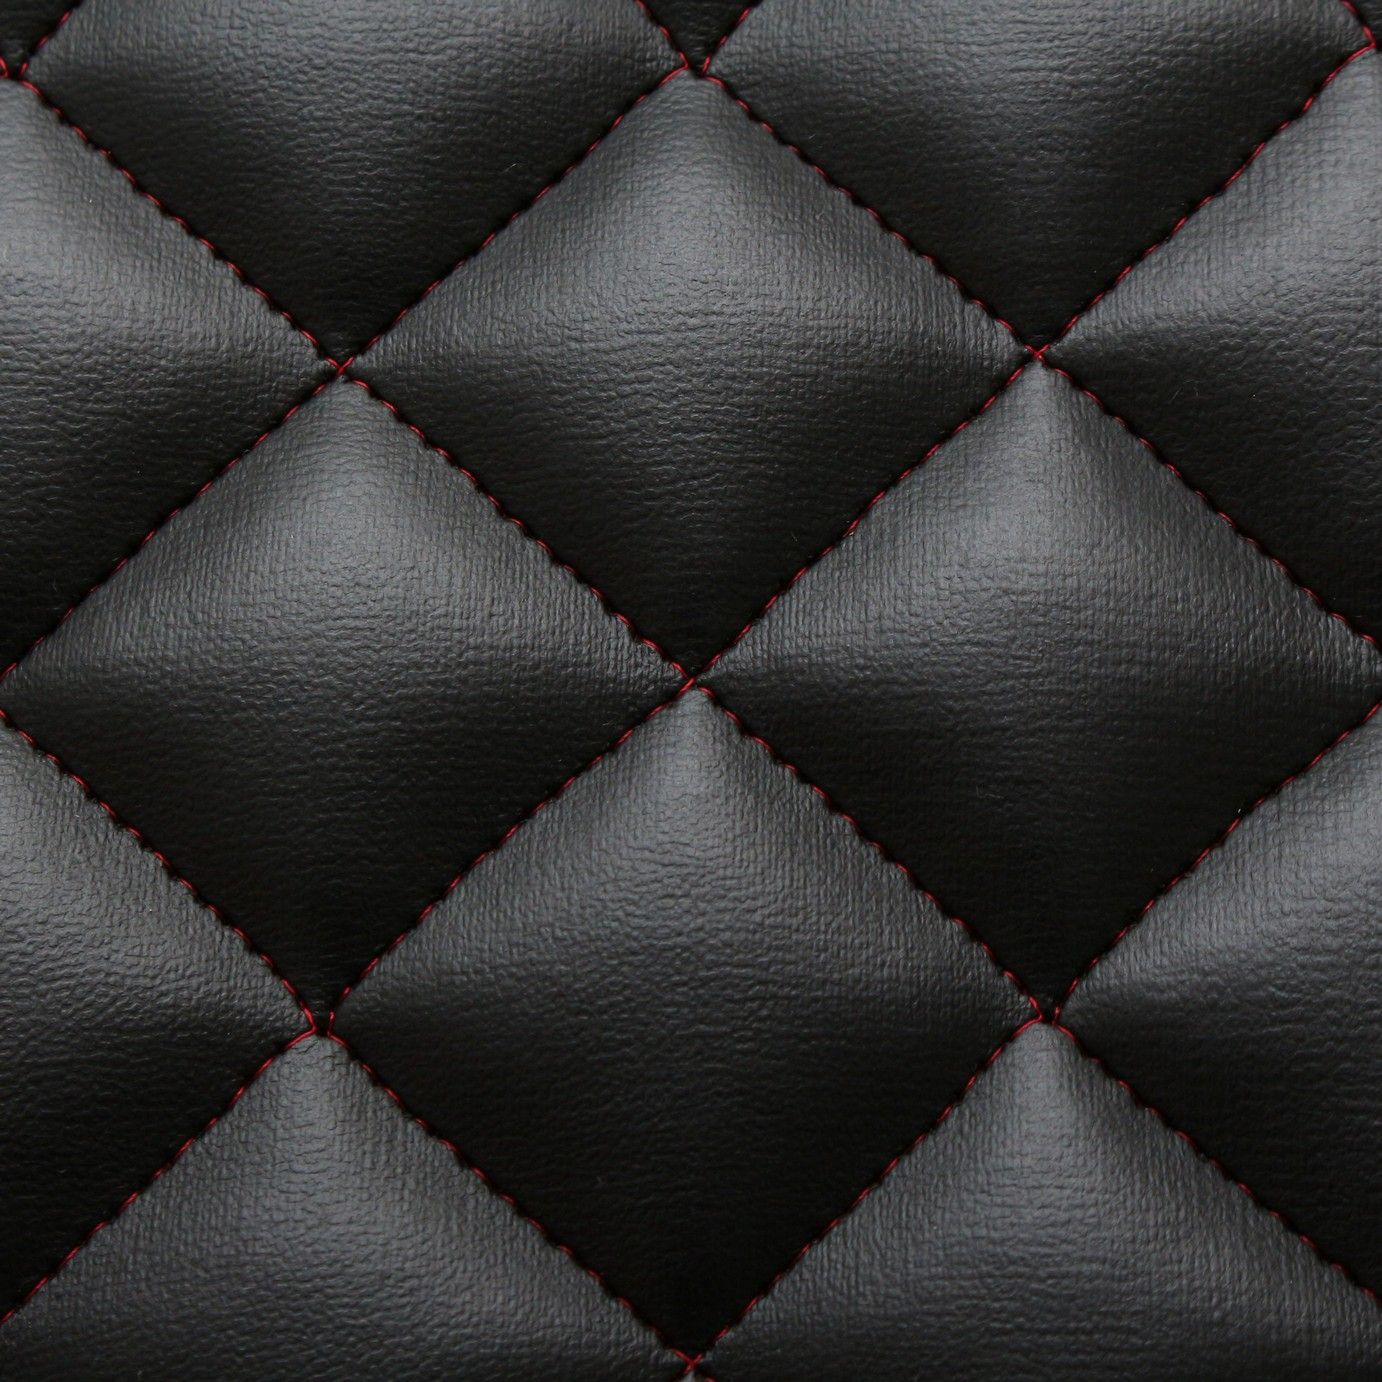 Details About Black Red Stitch Diamond Quilted Faux Leather Car